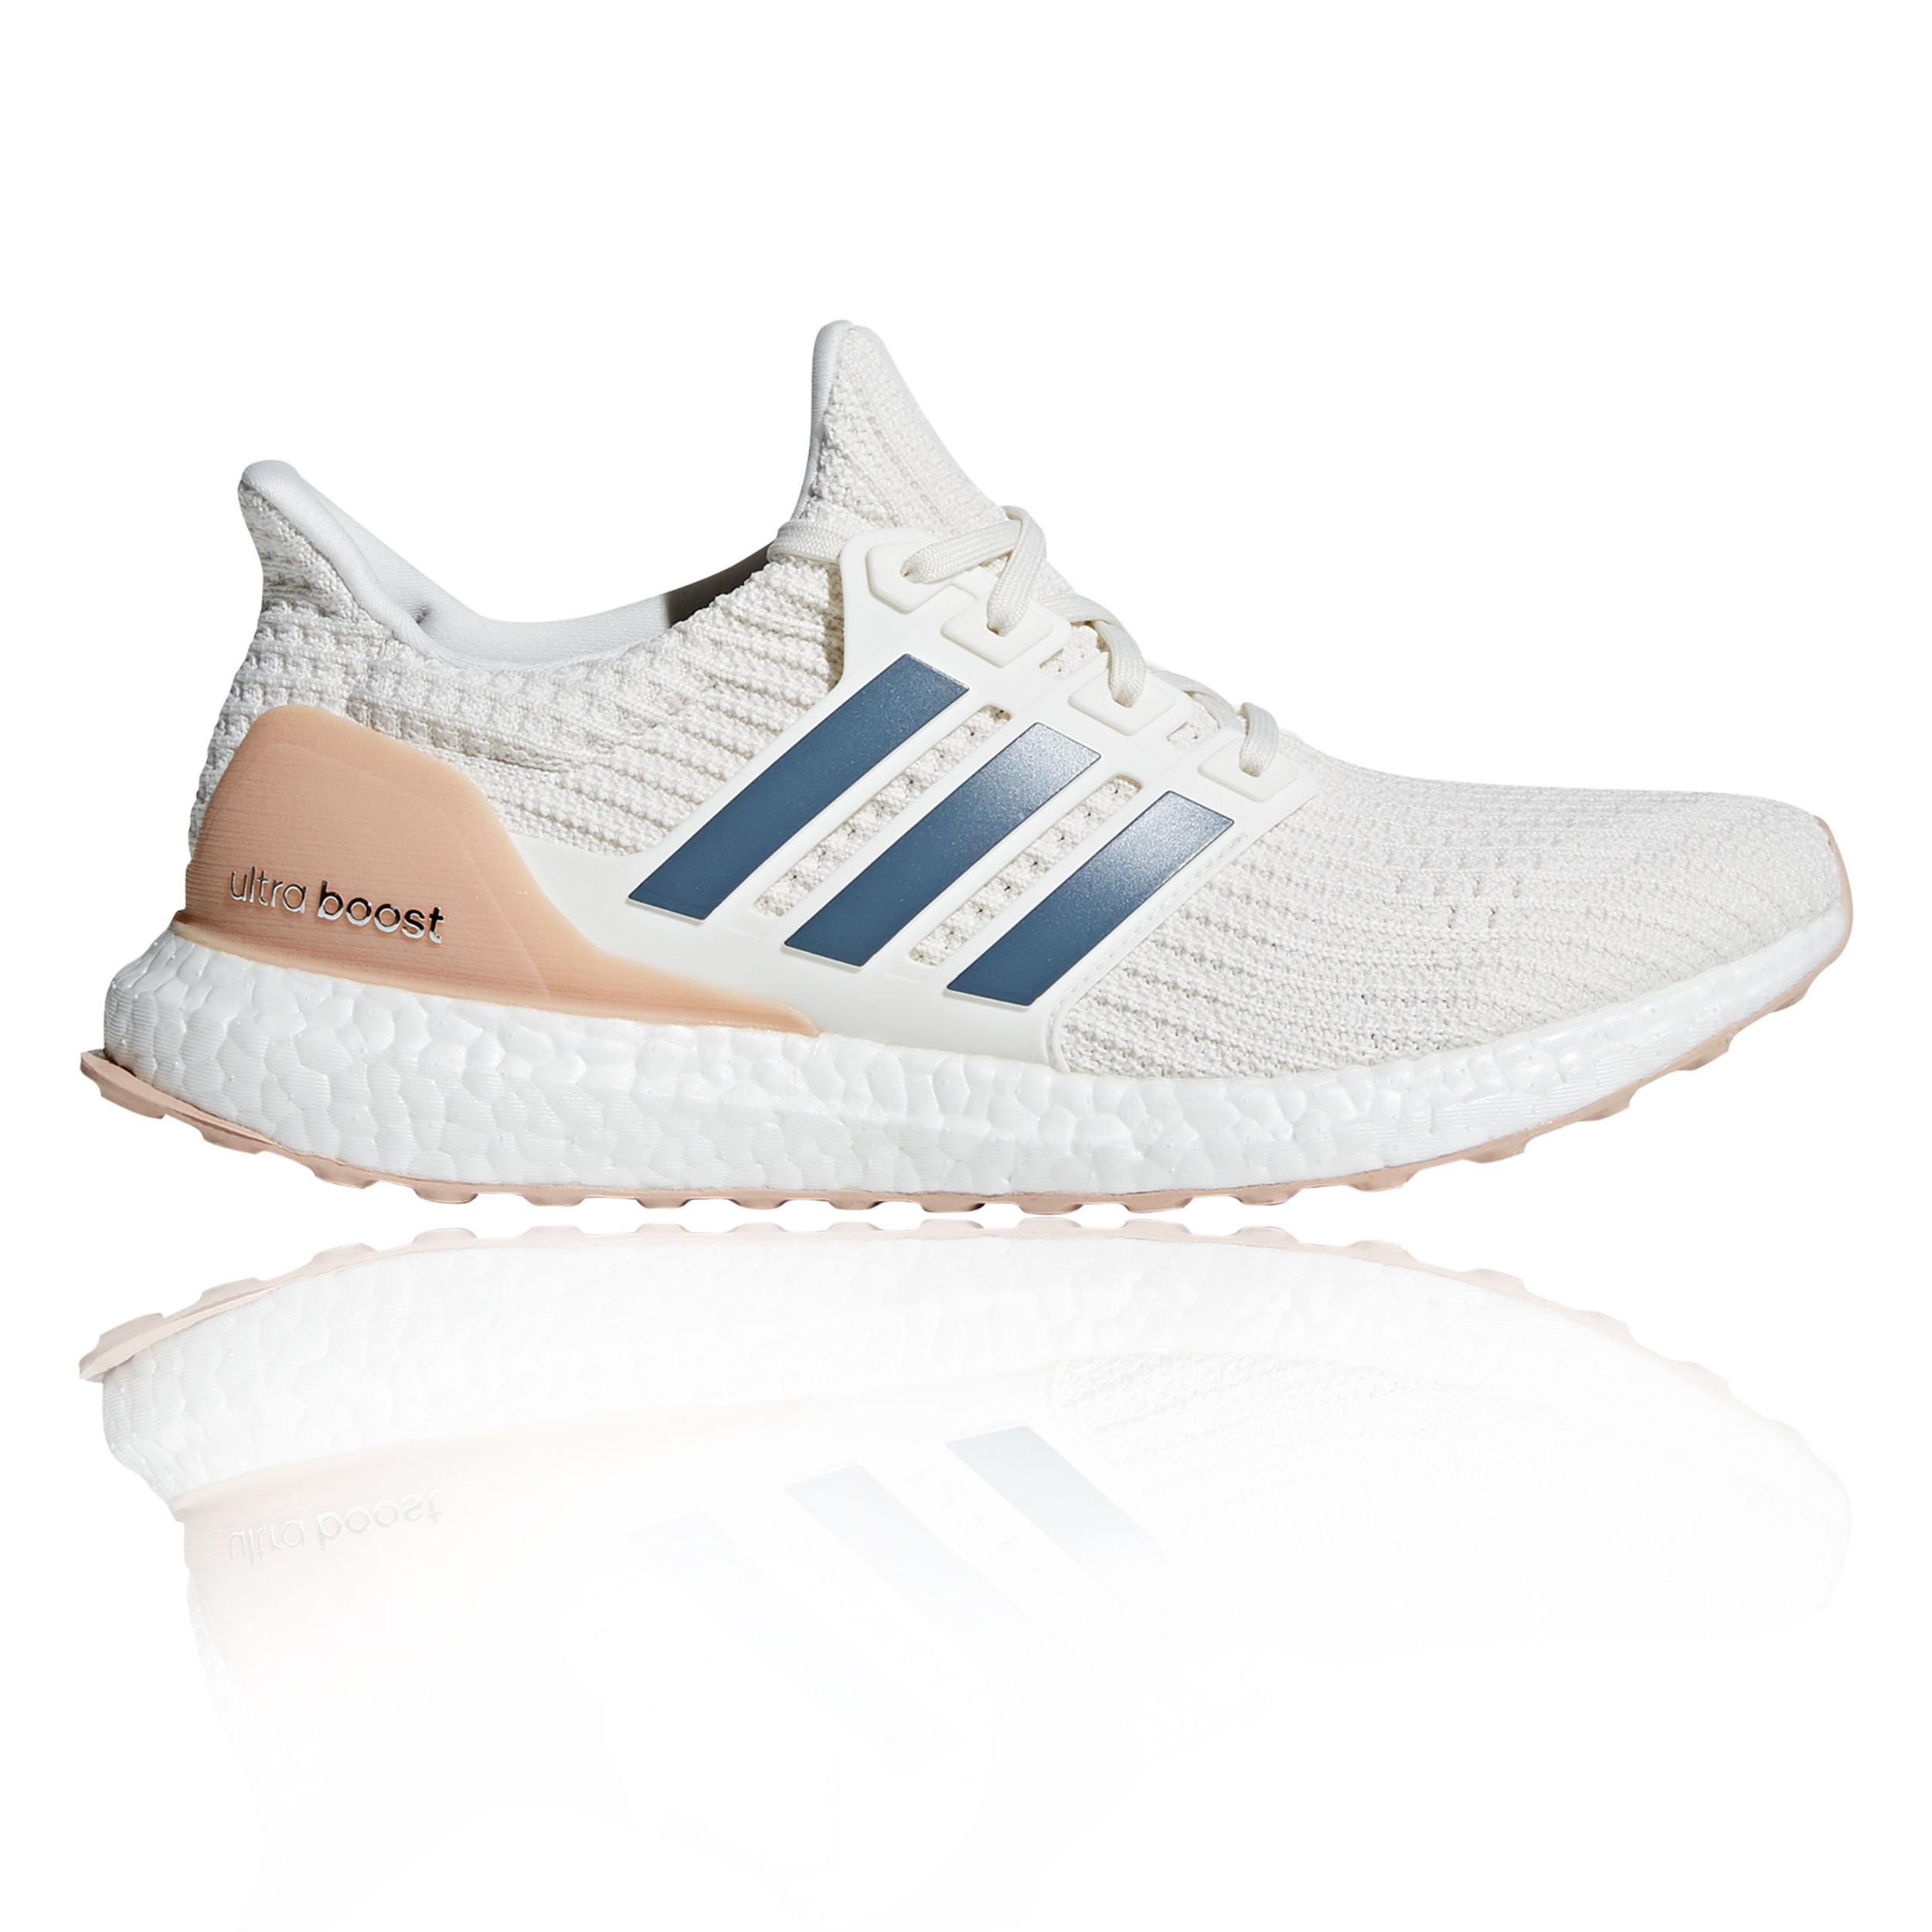 b8eb20b1a Details about adidas Mens UltraBOOST Running Shoes Trainers Sneakers White  Sports Breathable